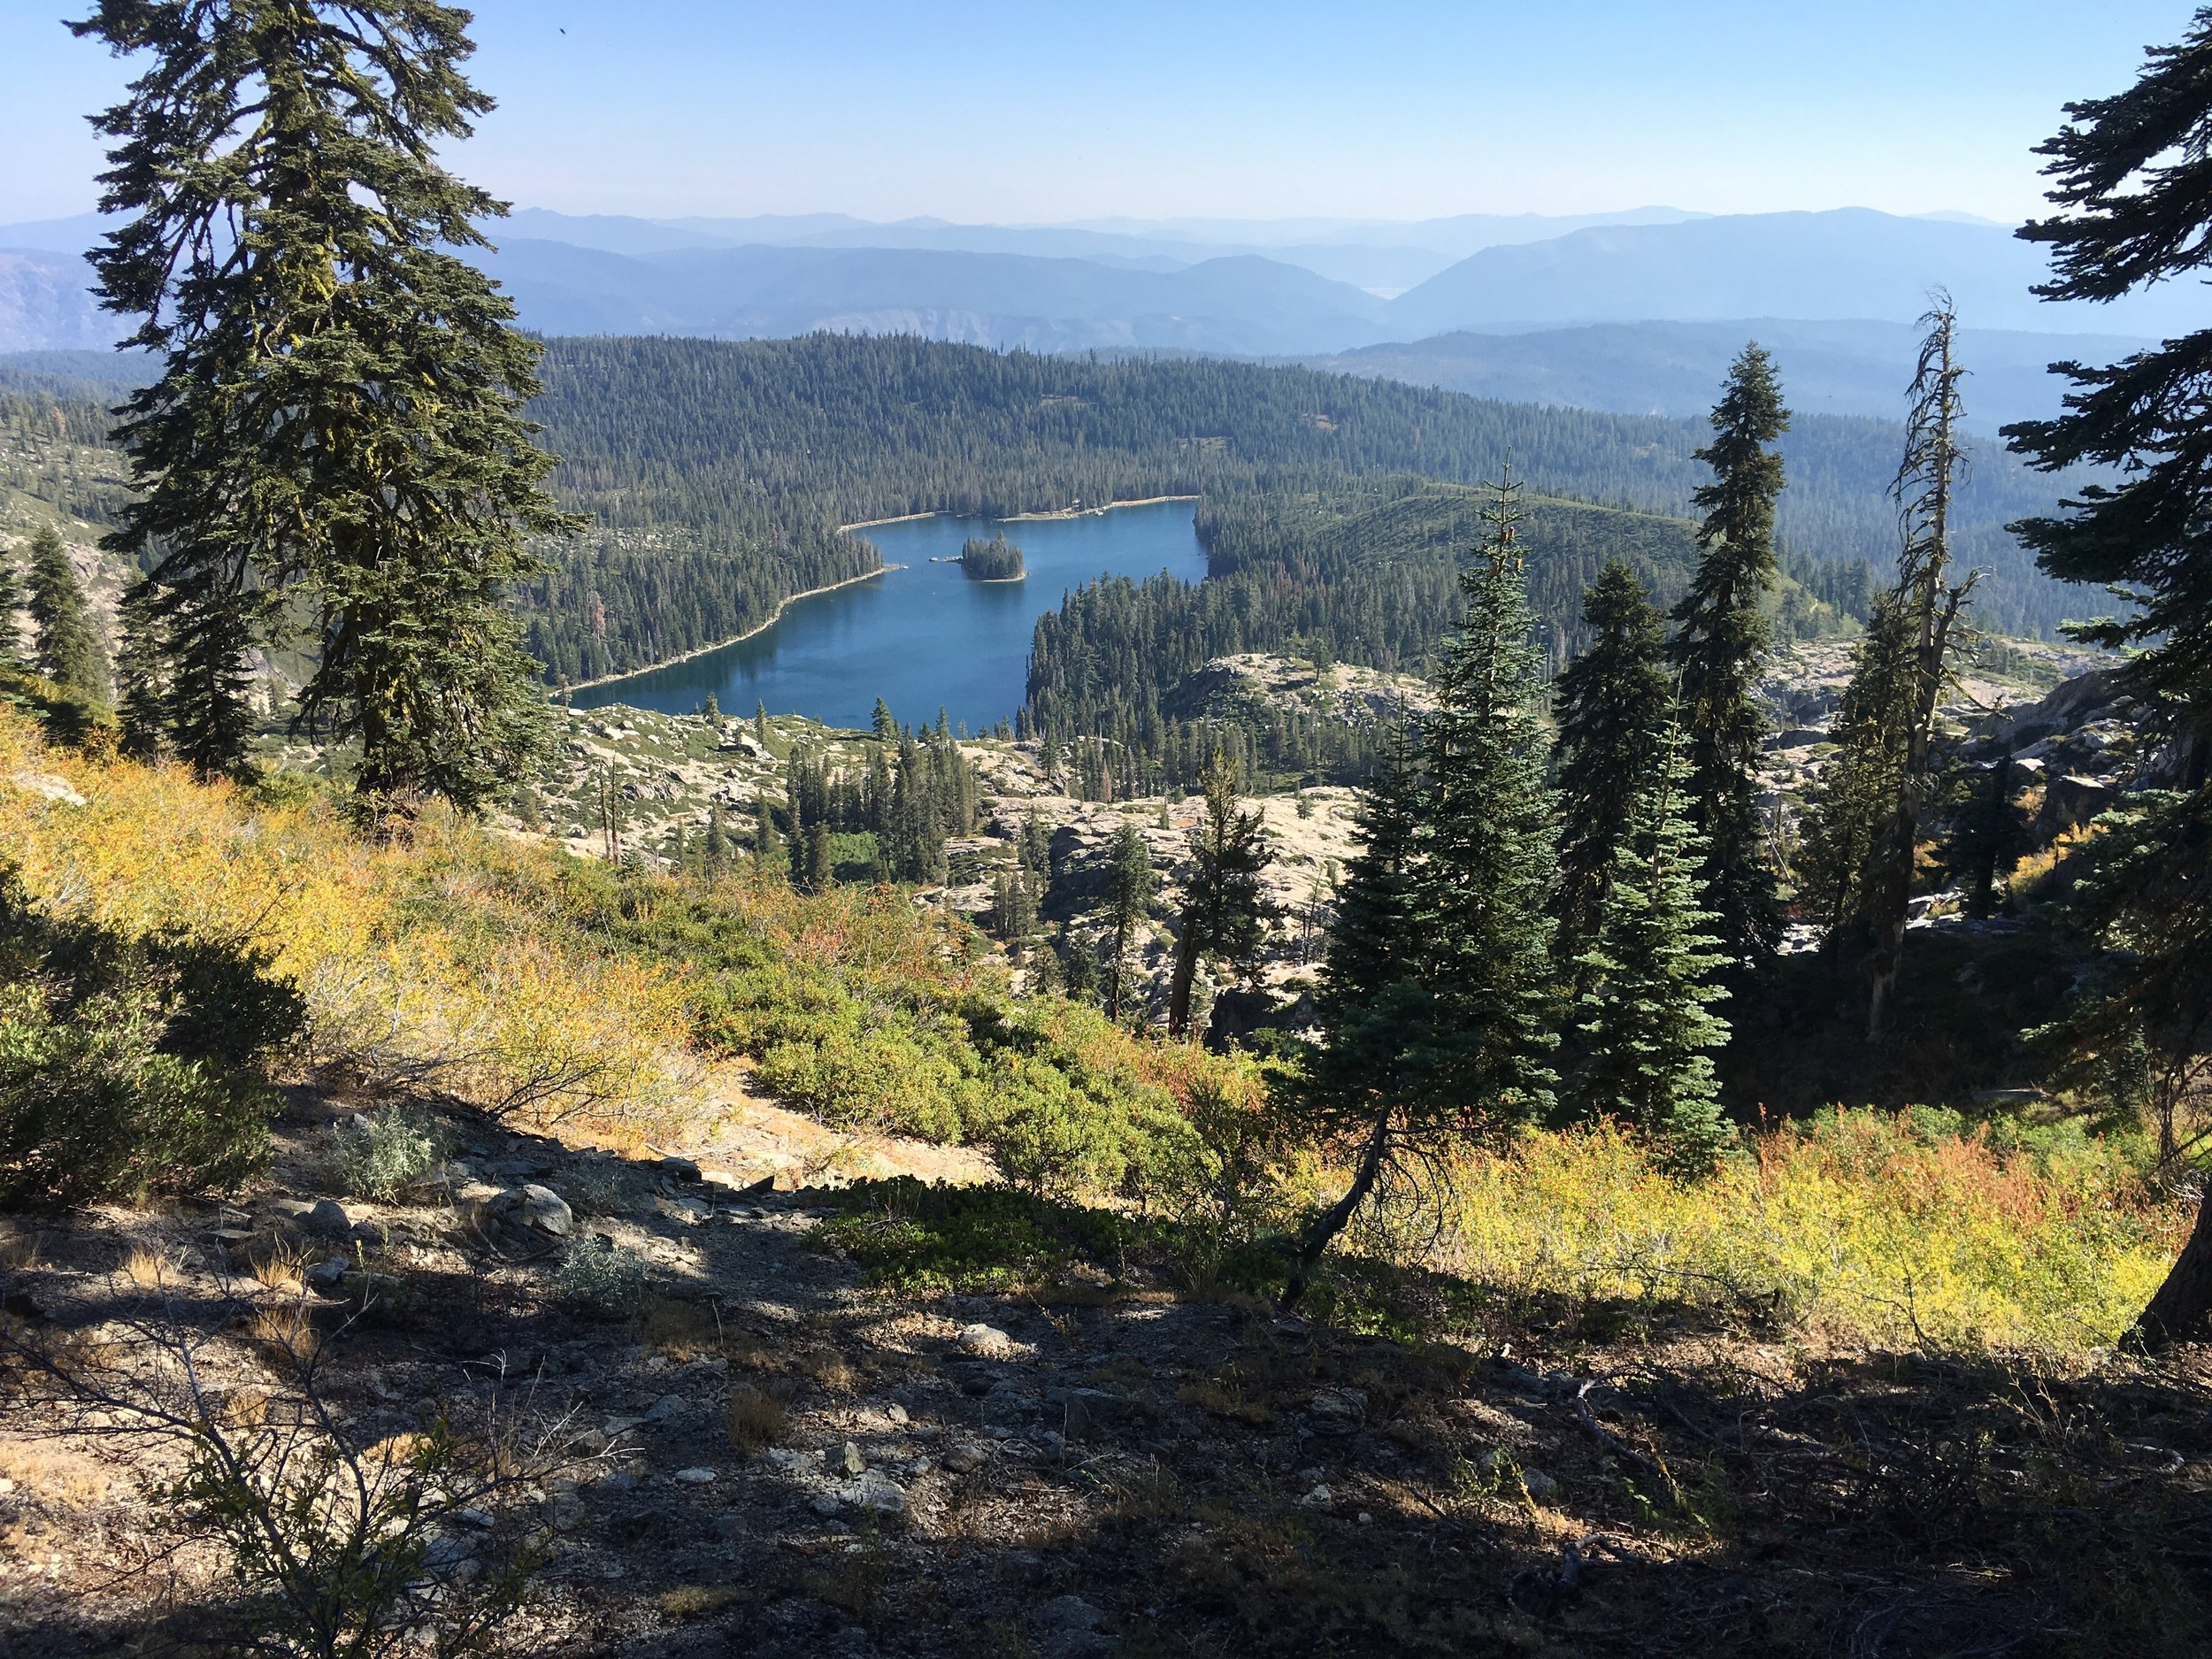 Silver Lake looking idyllic from our ridge top traverse.